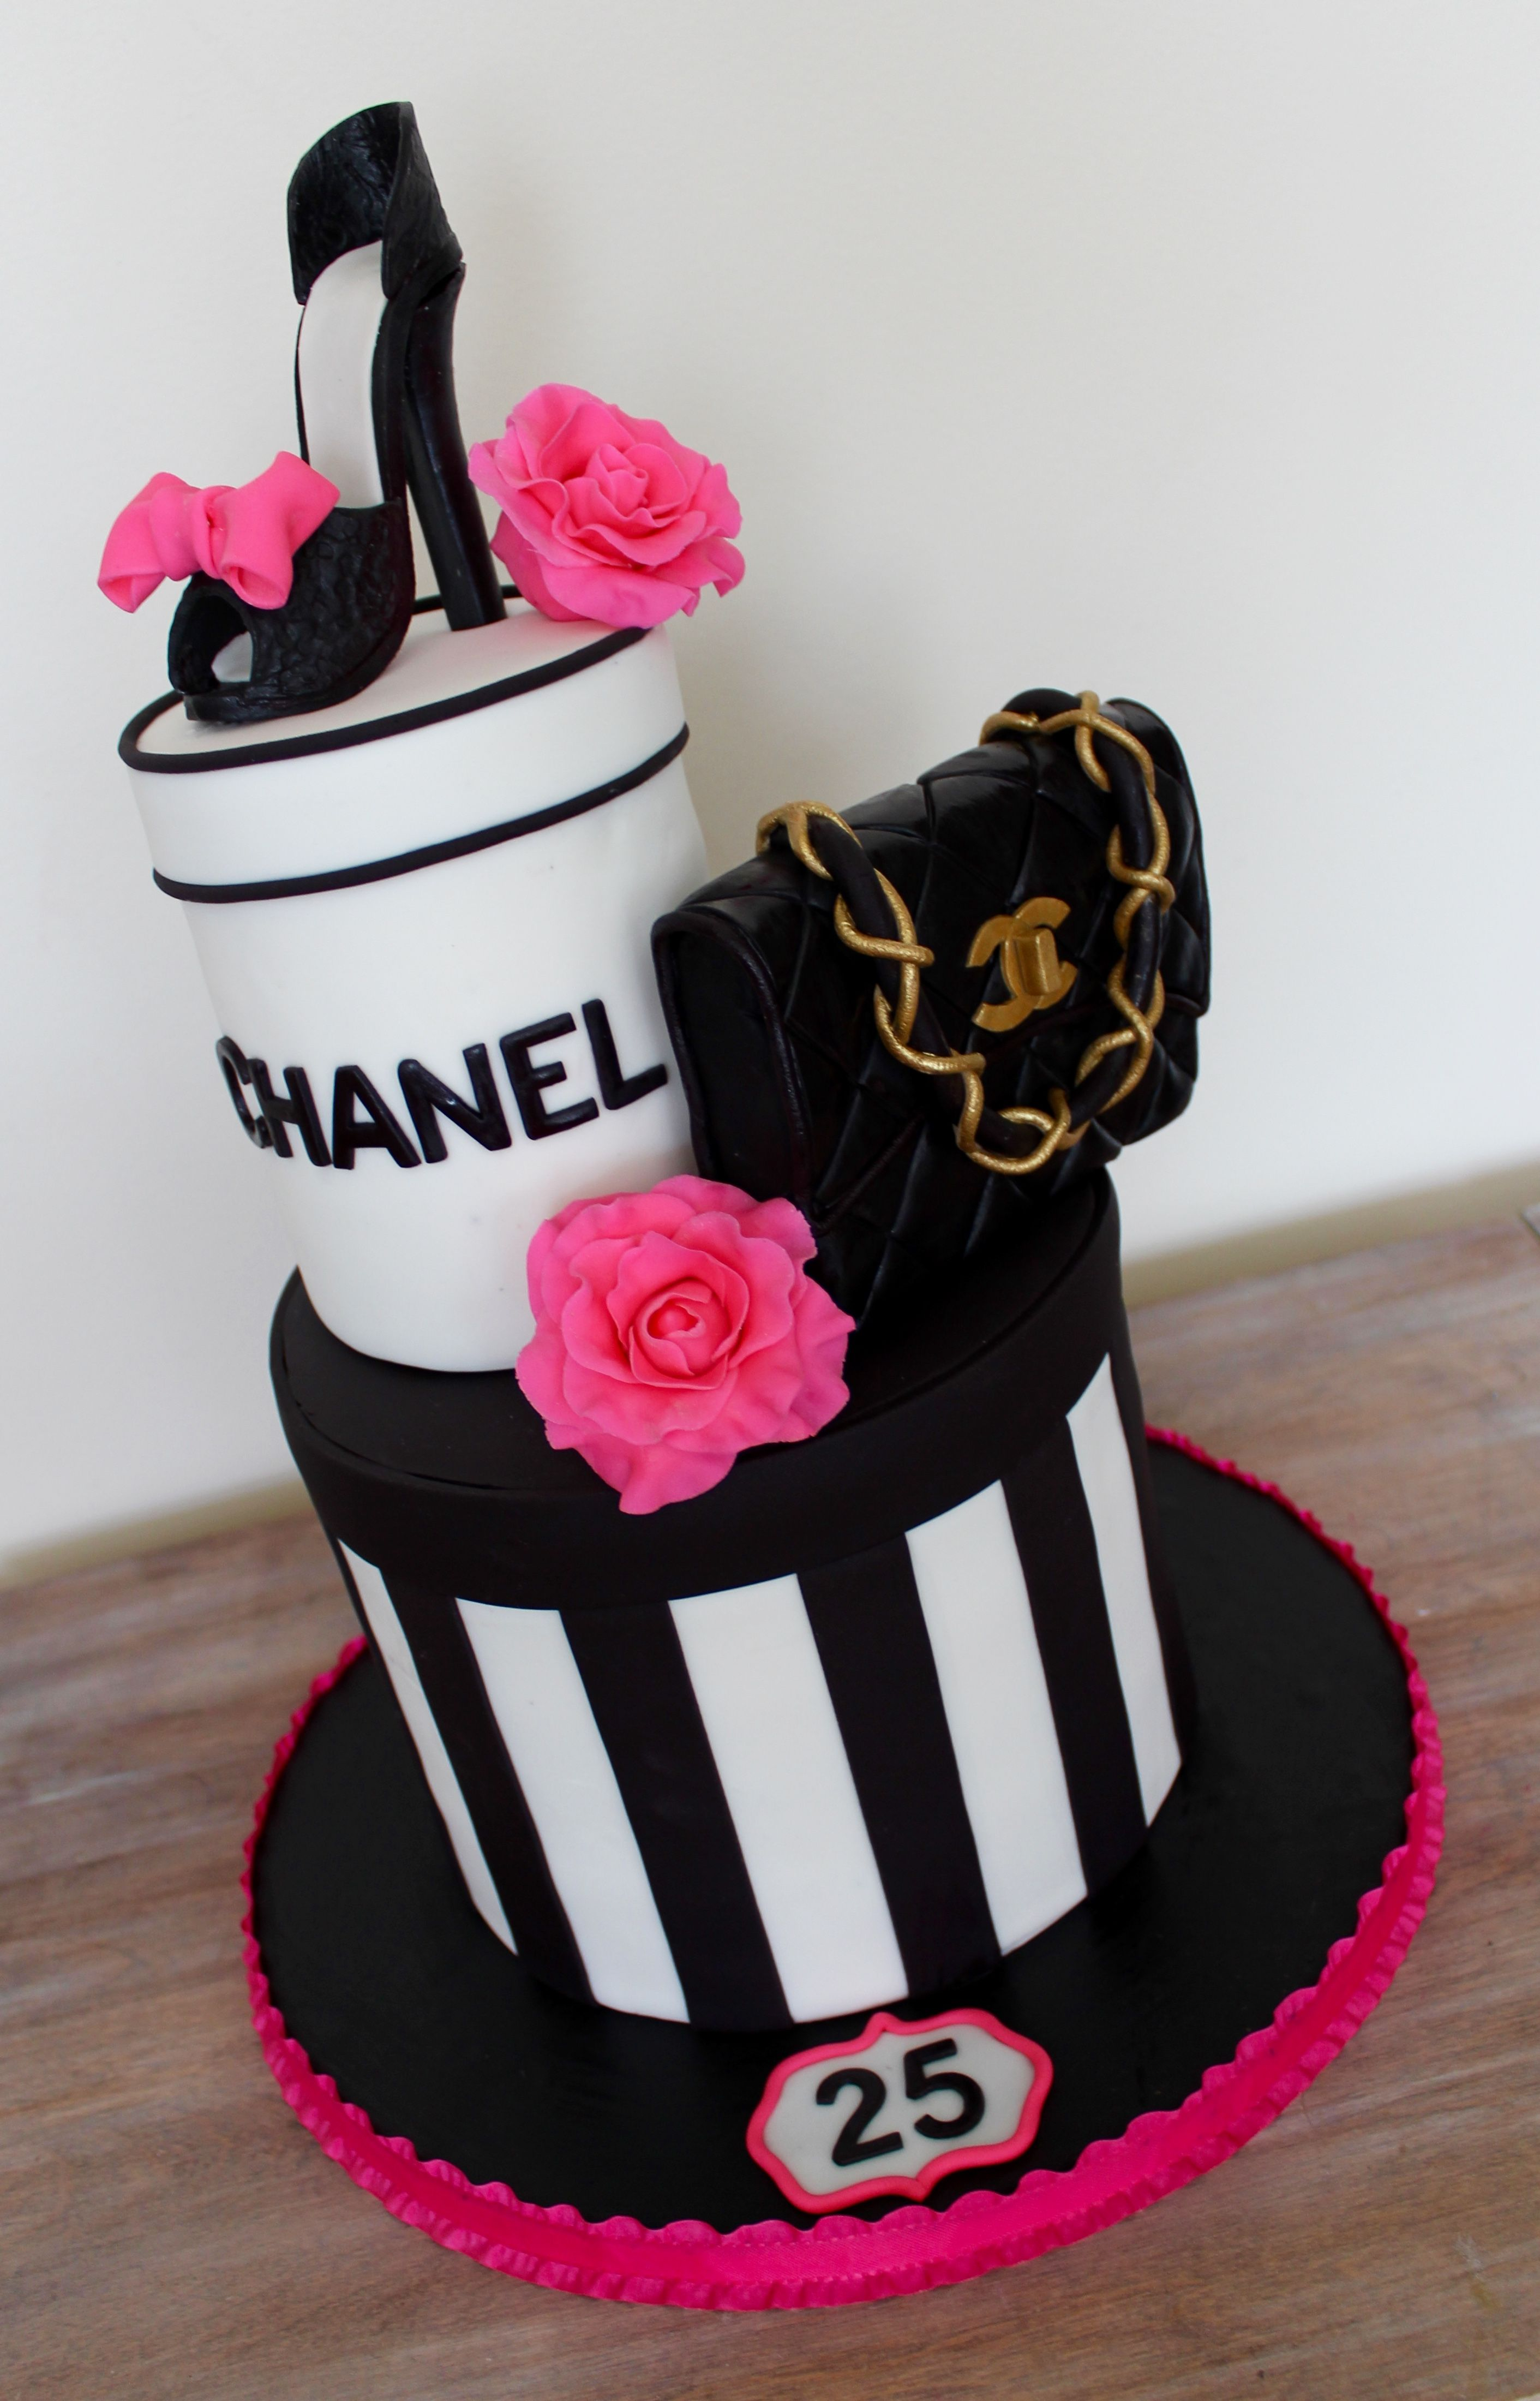 Chanel birthday cake with high heel purse fondant sugar flowers chanel birthday cake with high heel purse fondant sugar flowers pink fuchsia black dhlflorist Image collections